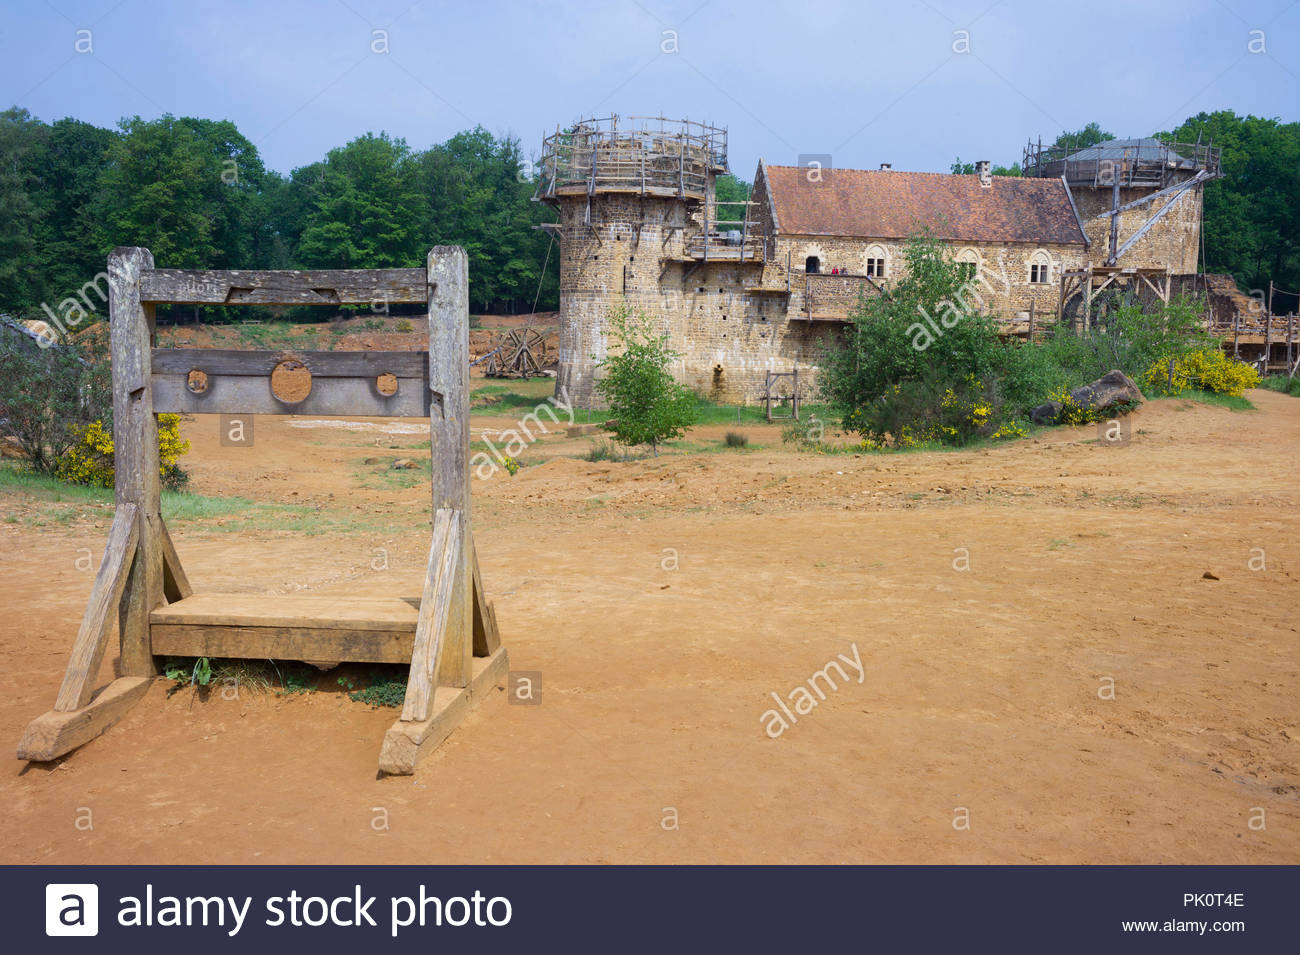 'Punishment' stocks at Gudelon Castle, Burgundy, France. The castle is being built entirely using medieval tools and building methods. Stock Photo